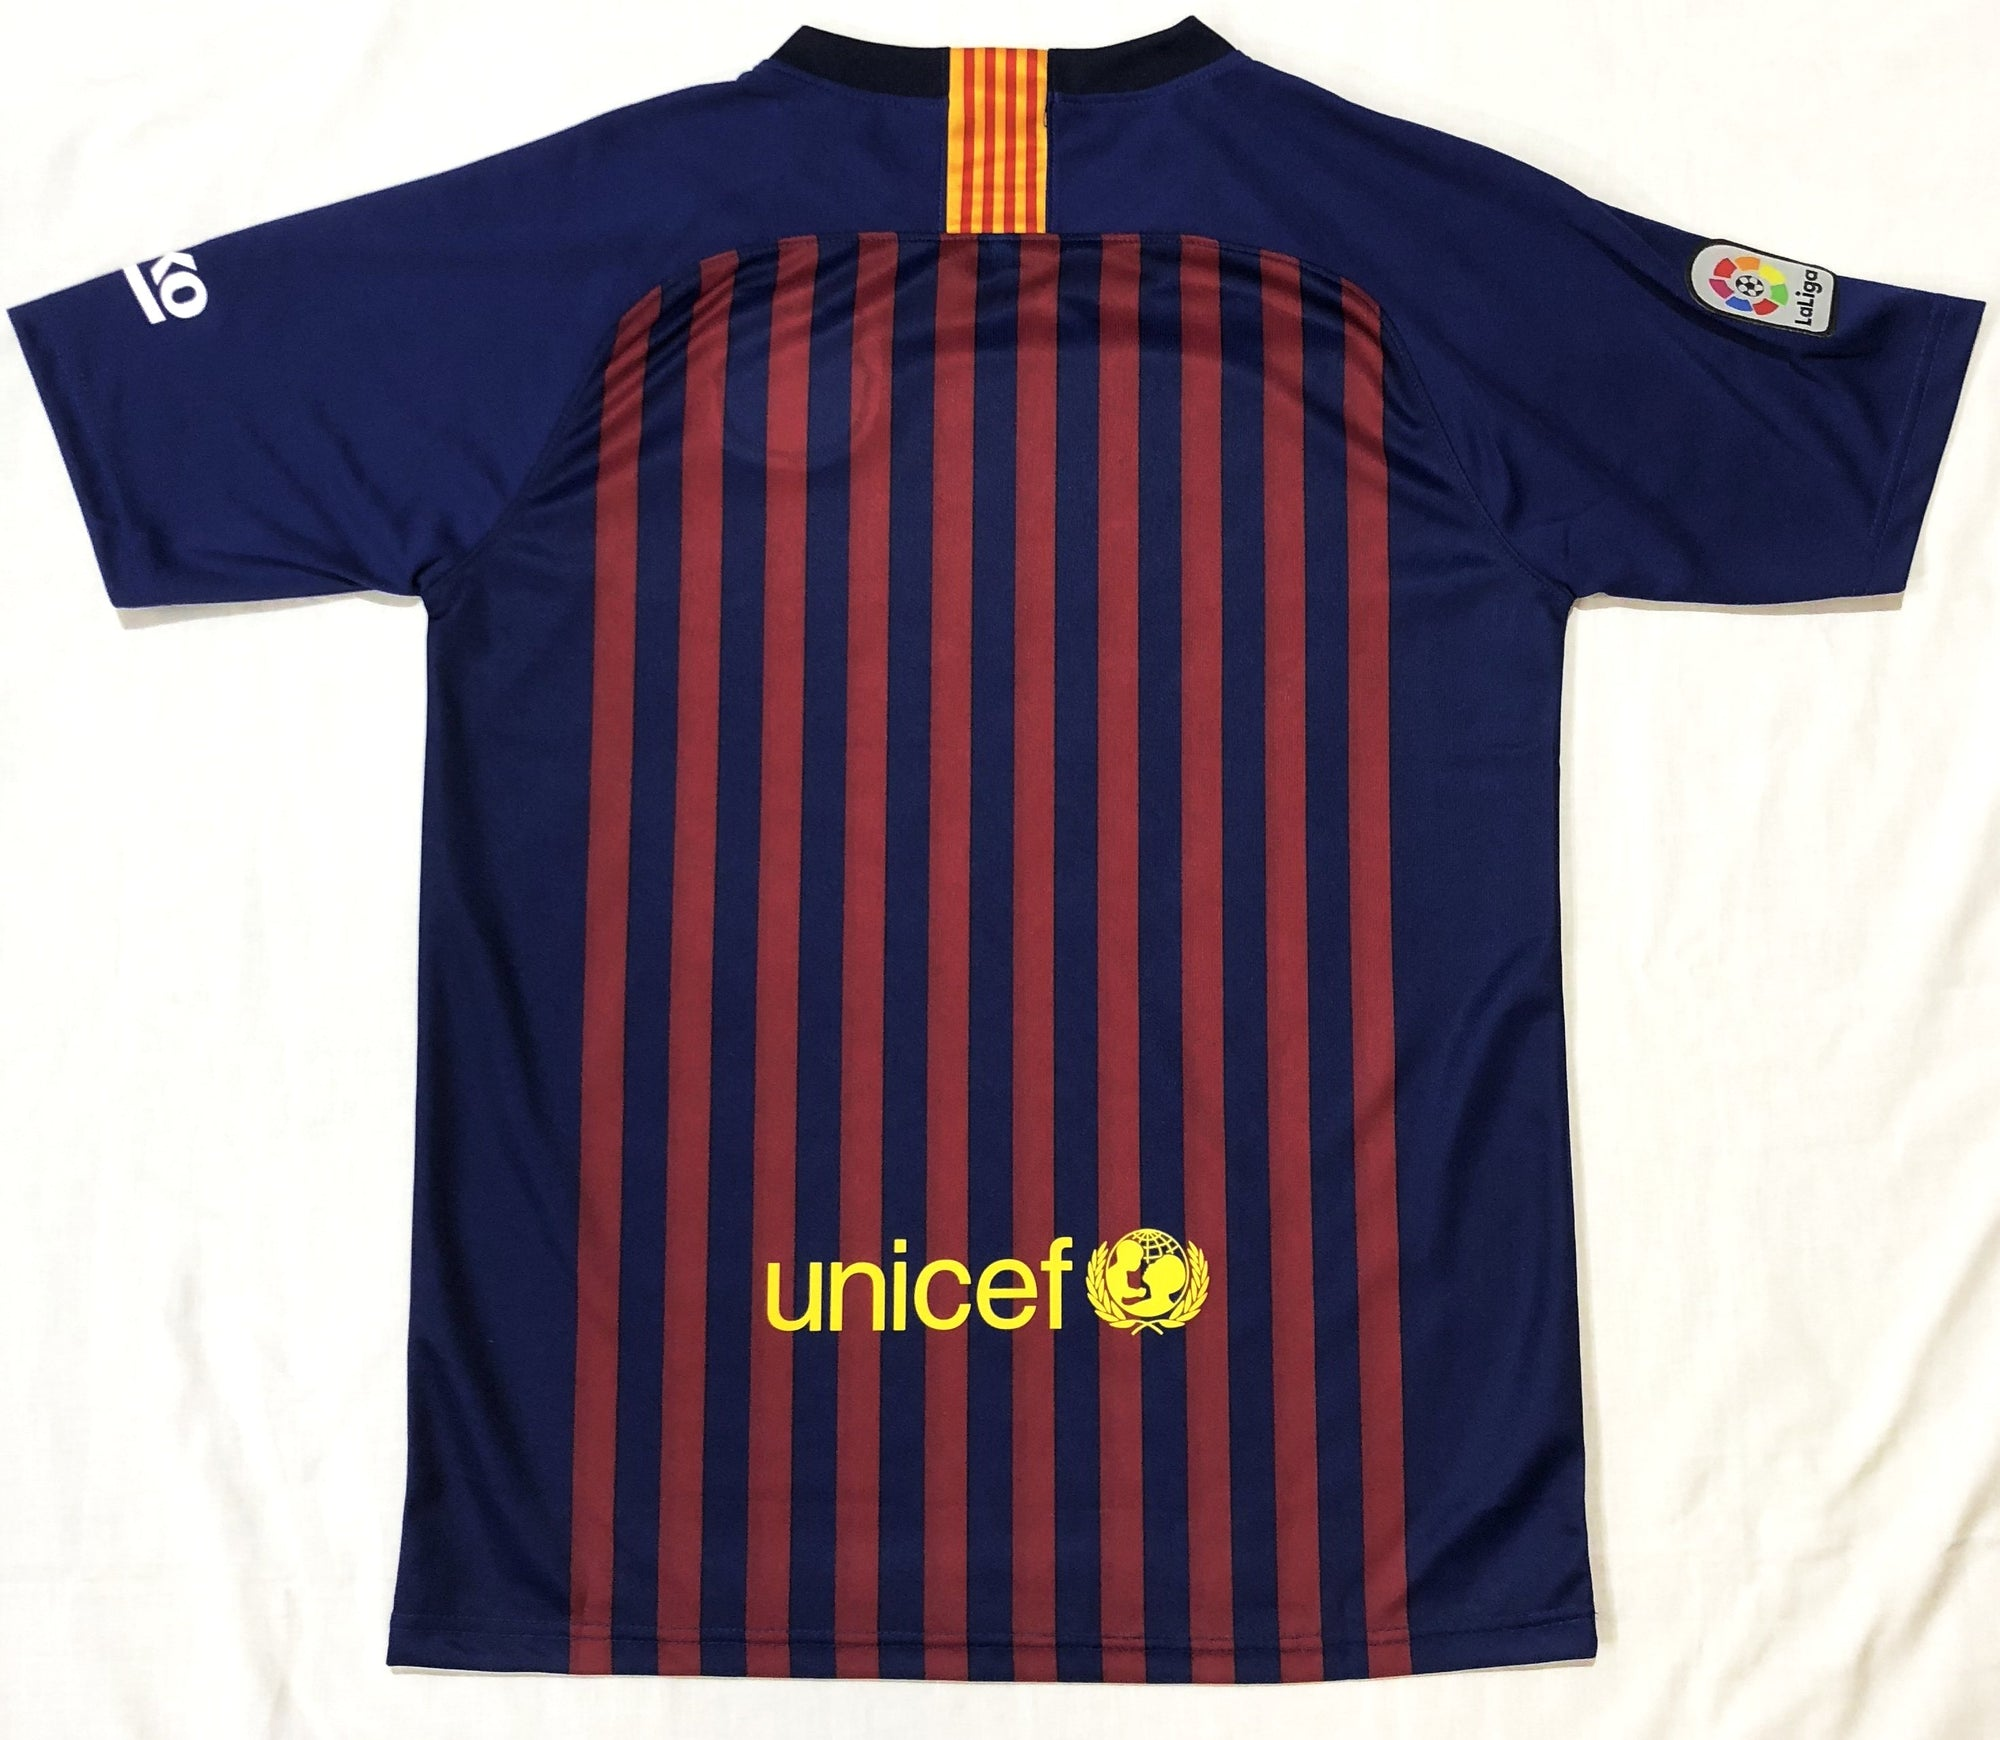 c16002ad8 Barcelona REPLICA 2018 19 Adult Home Shirt - Soccer Central